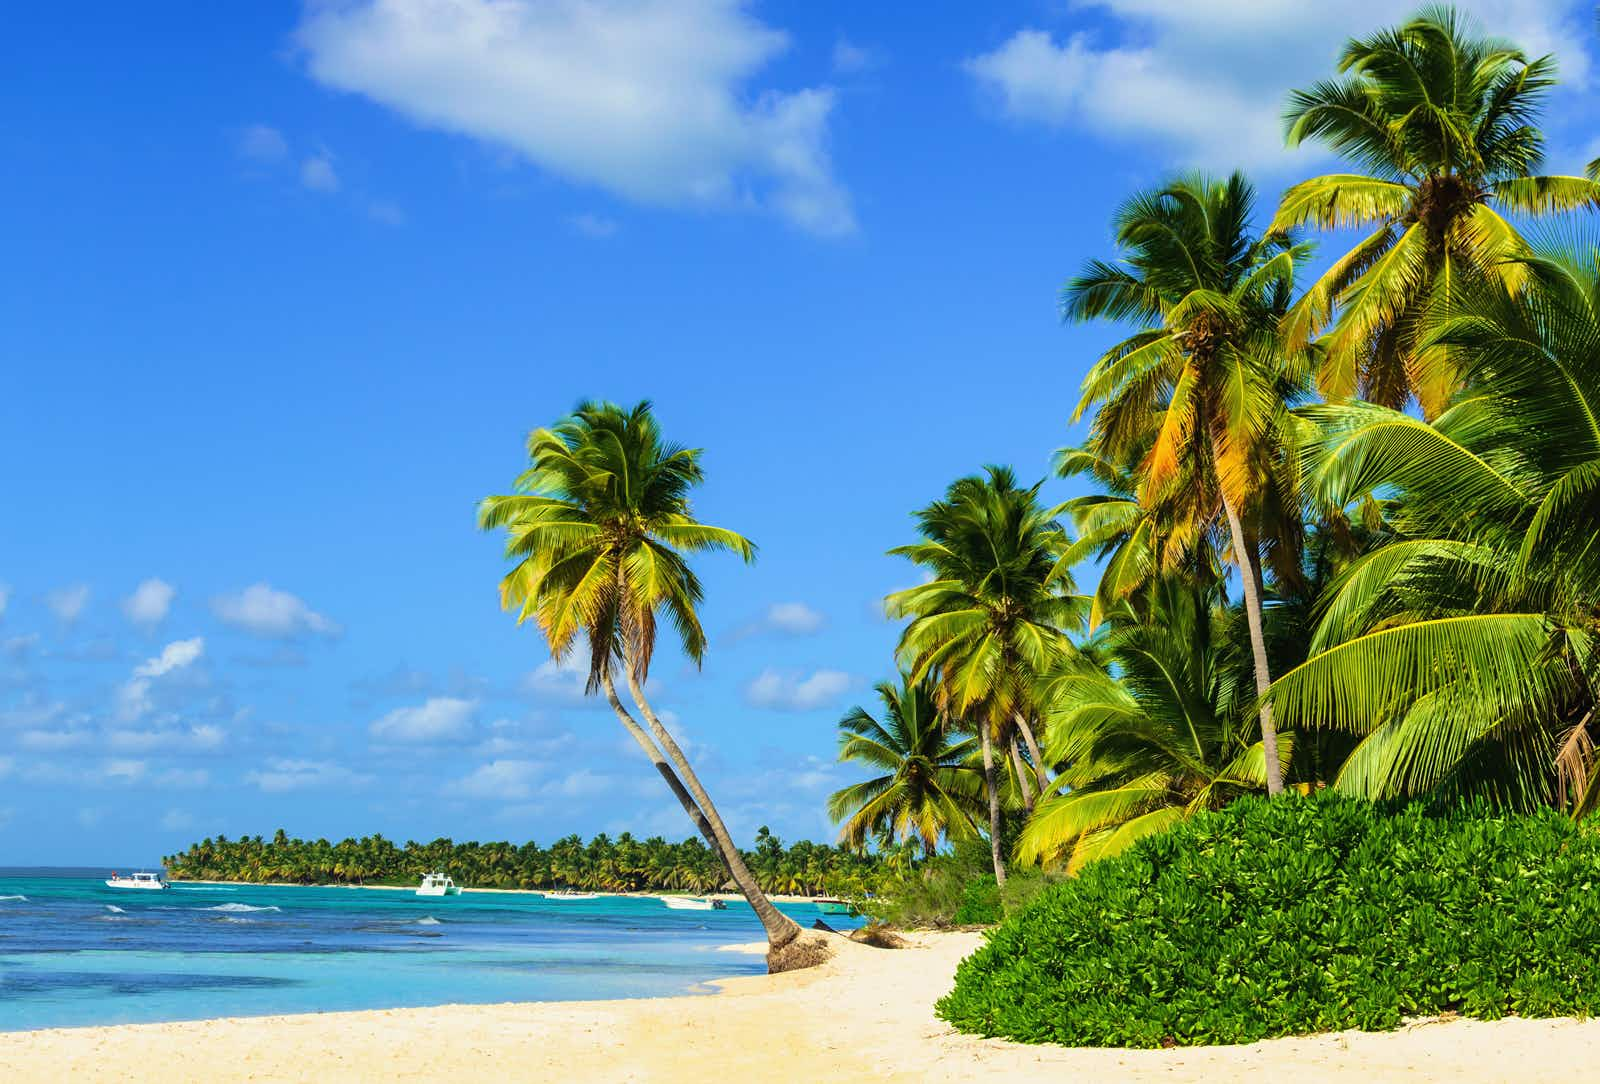 Palm trees and gold sand next to an azure cove